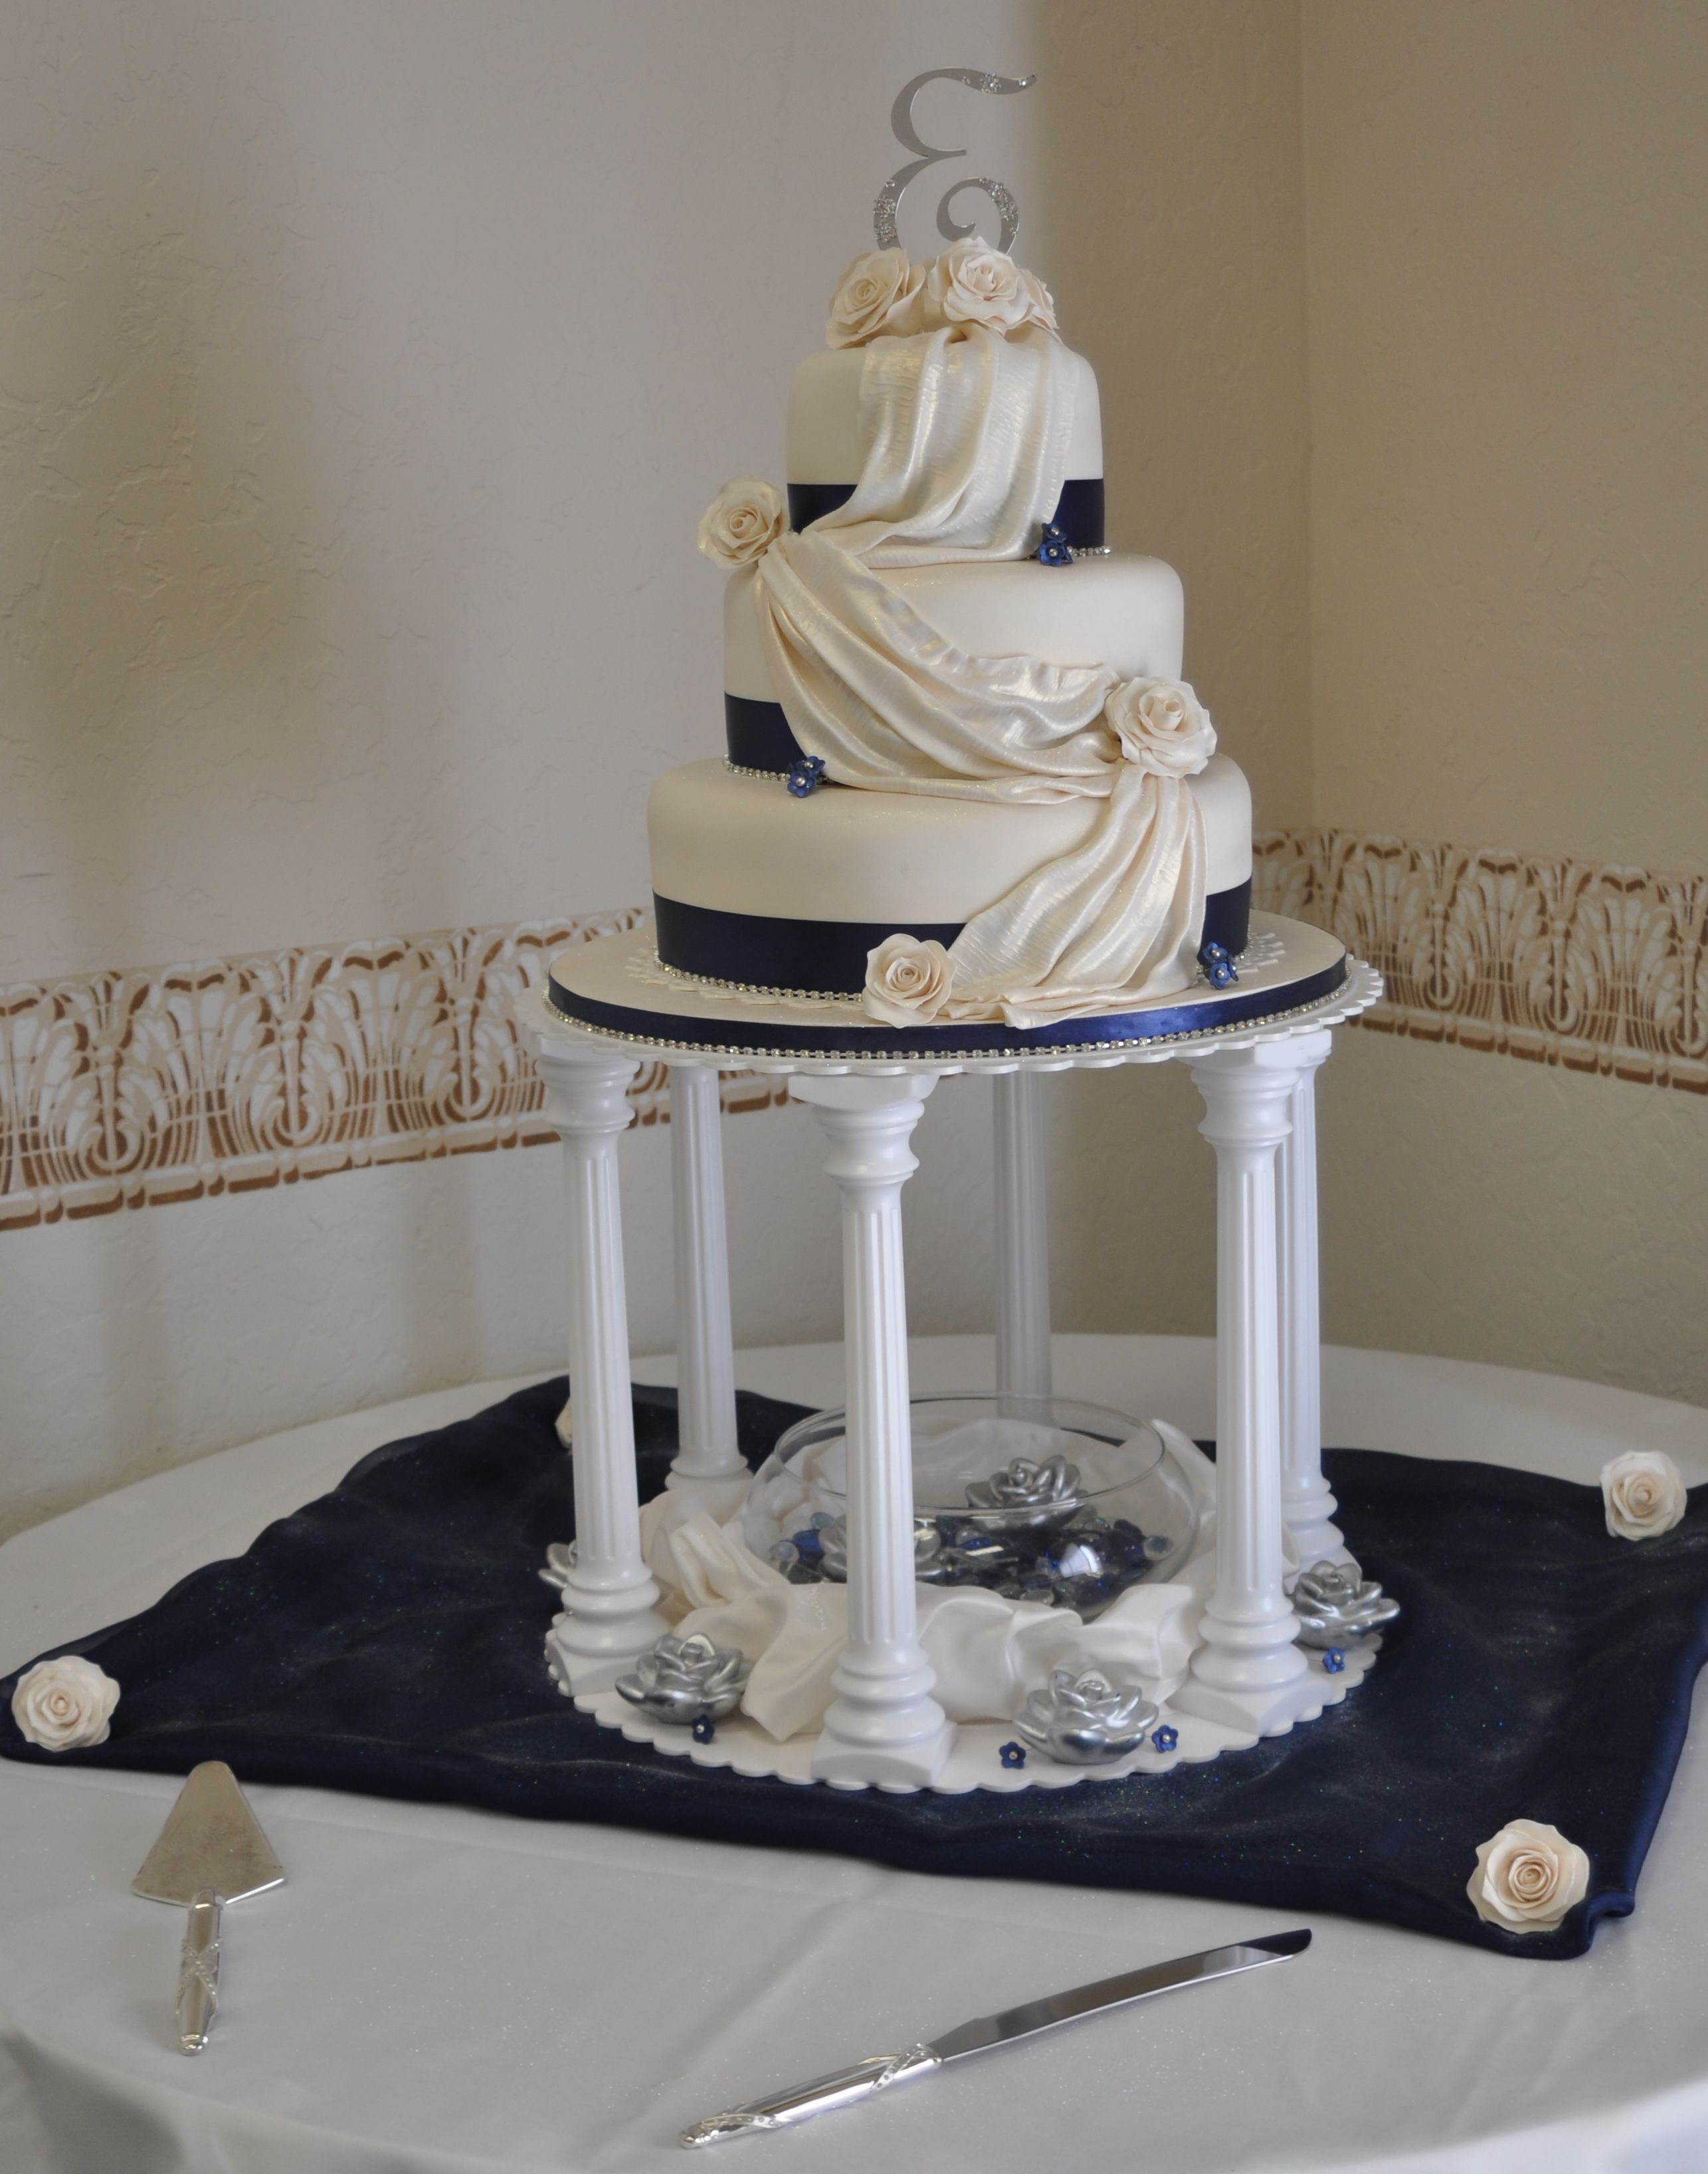 My Sister's Wedding Cake